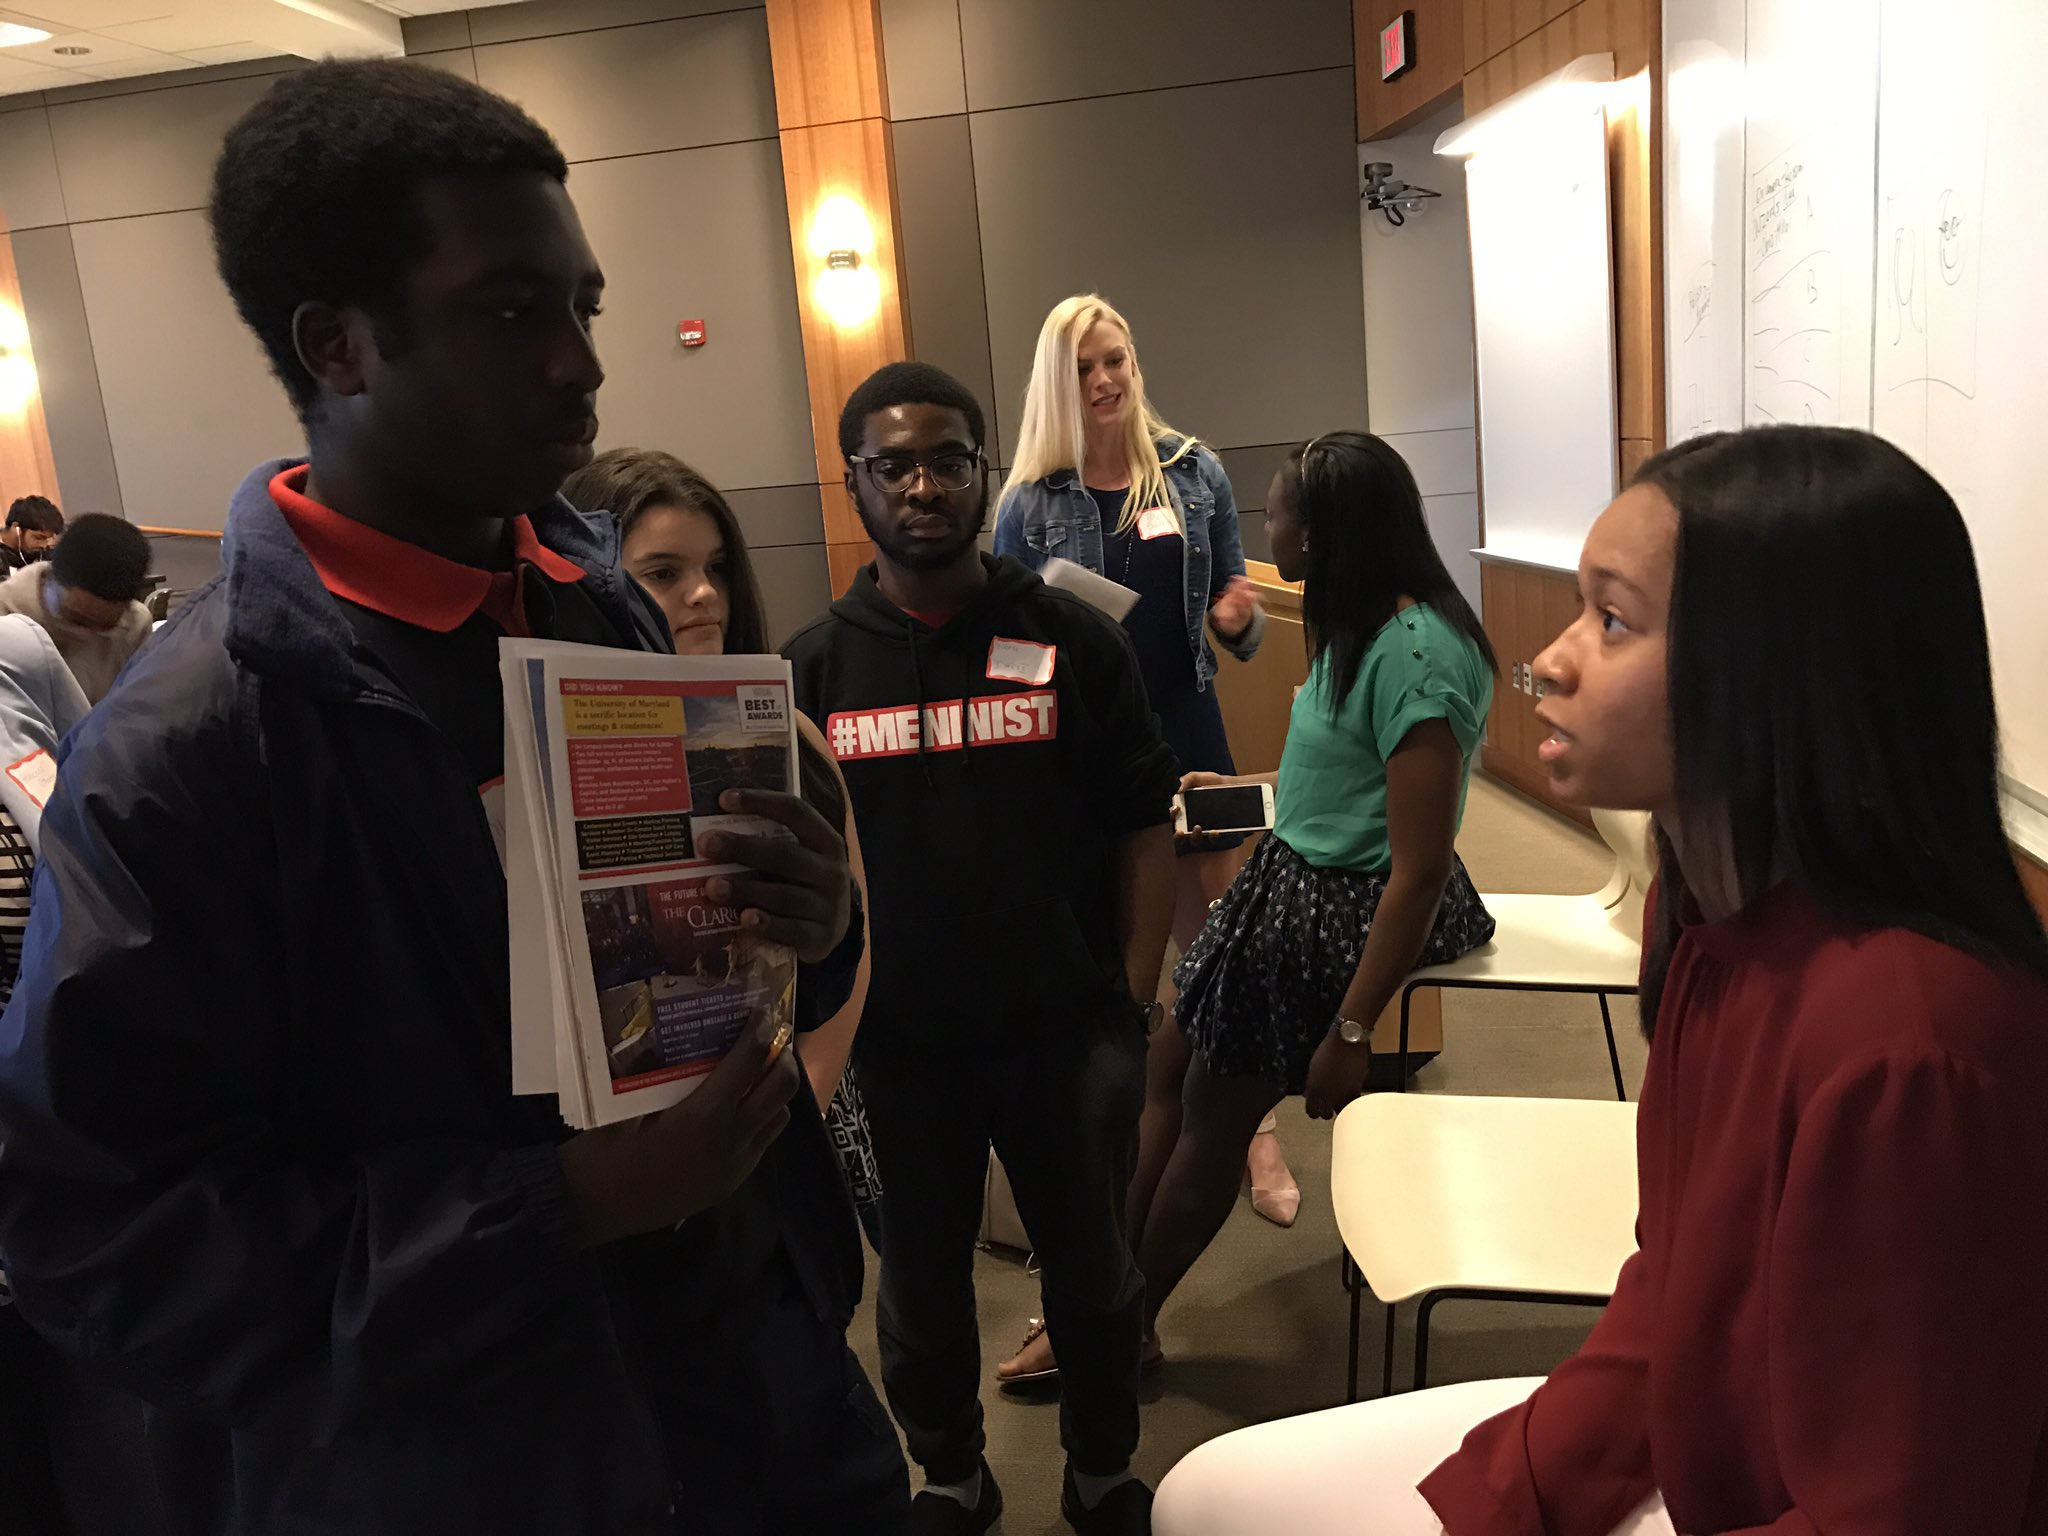 .@InstantRHIplay talks to an attendee at the #PovichWorkshop17 https://t.co/3iw0tqt93w